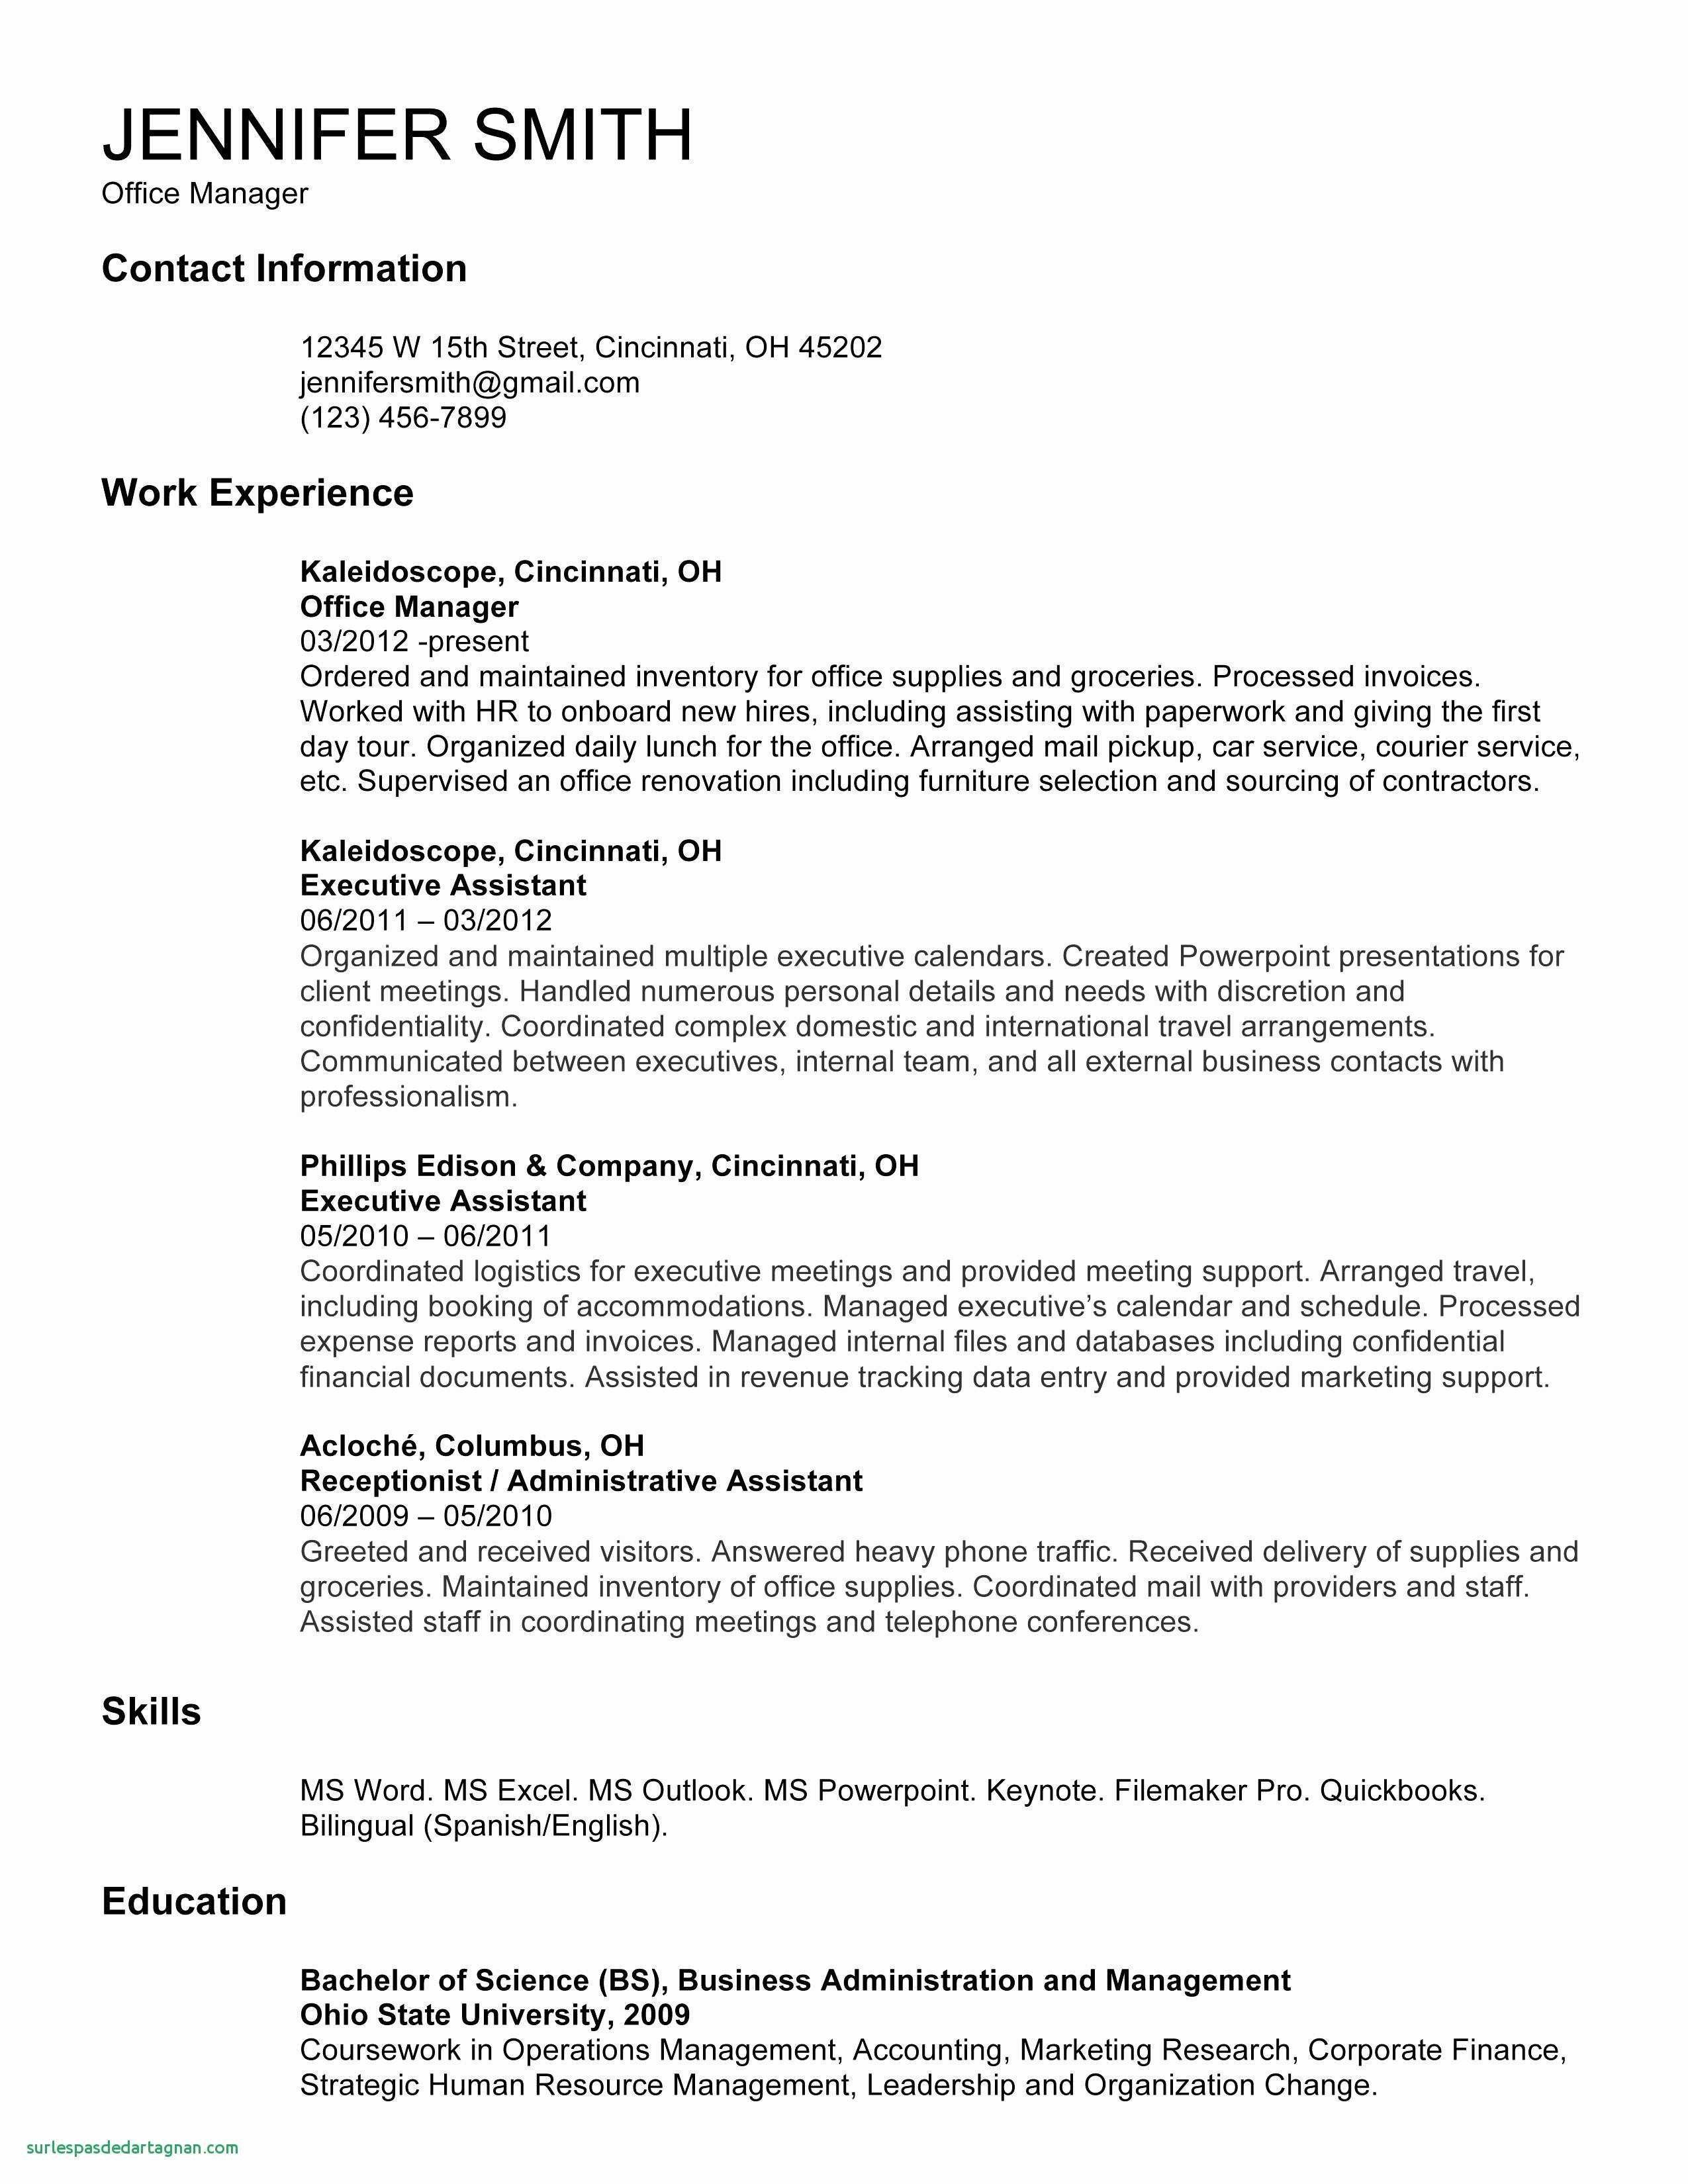 Resume Template 2018 - Resume Template Download Free Unique ¢Ë†Å¡ Resume Template Download